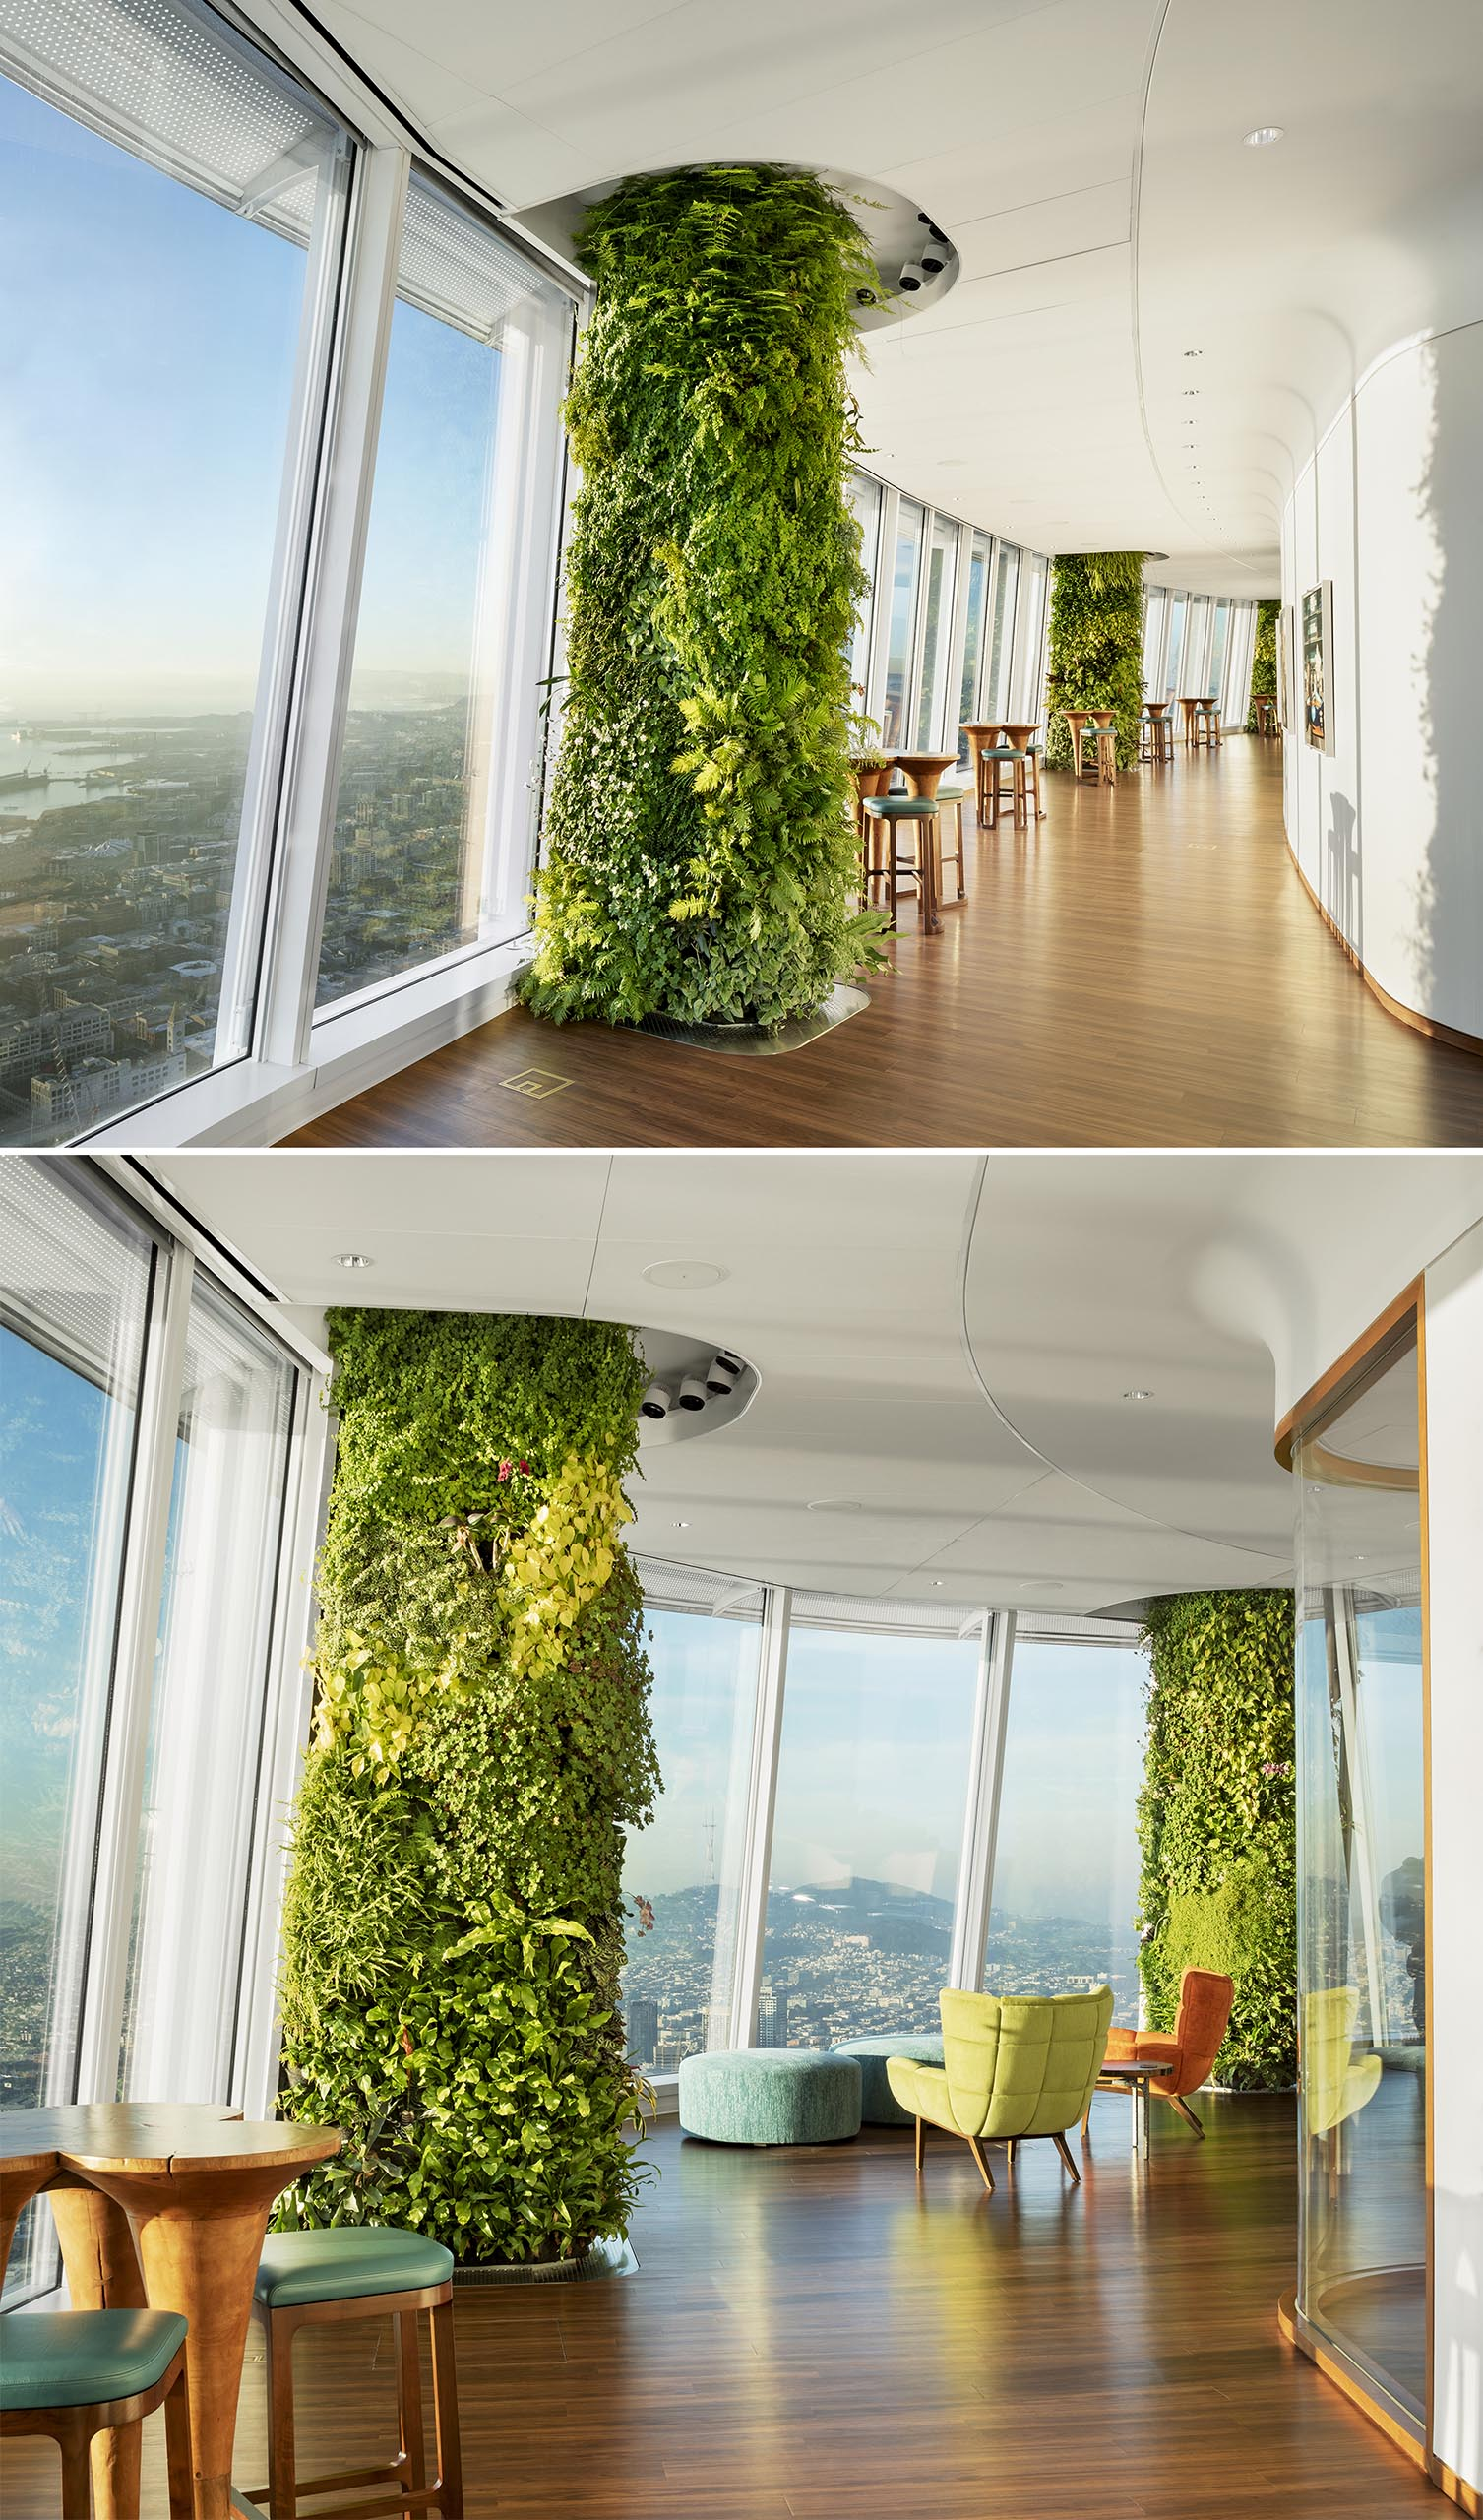 13 foot high vertical gardens have  been used to hide building columns and add a natural element to an office building.